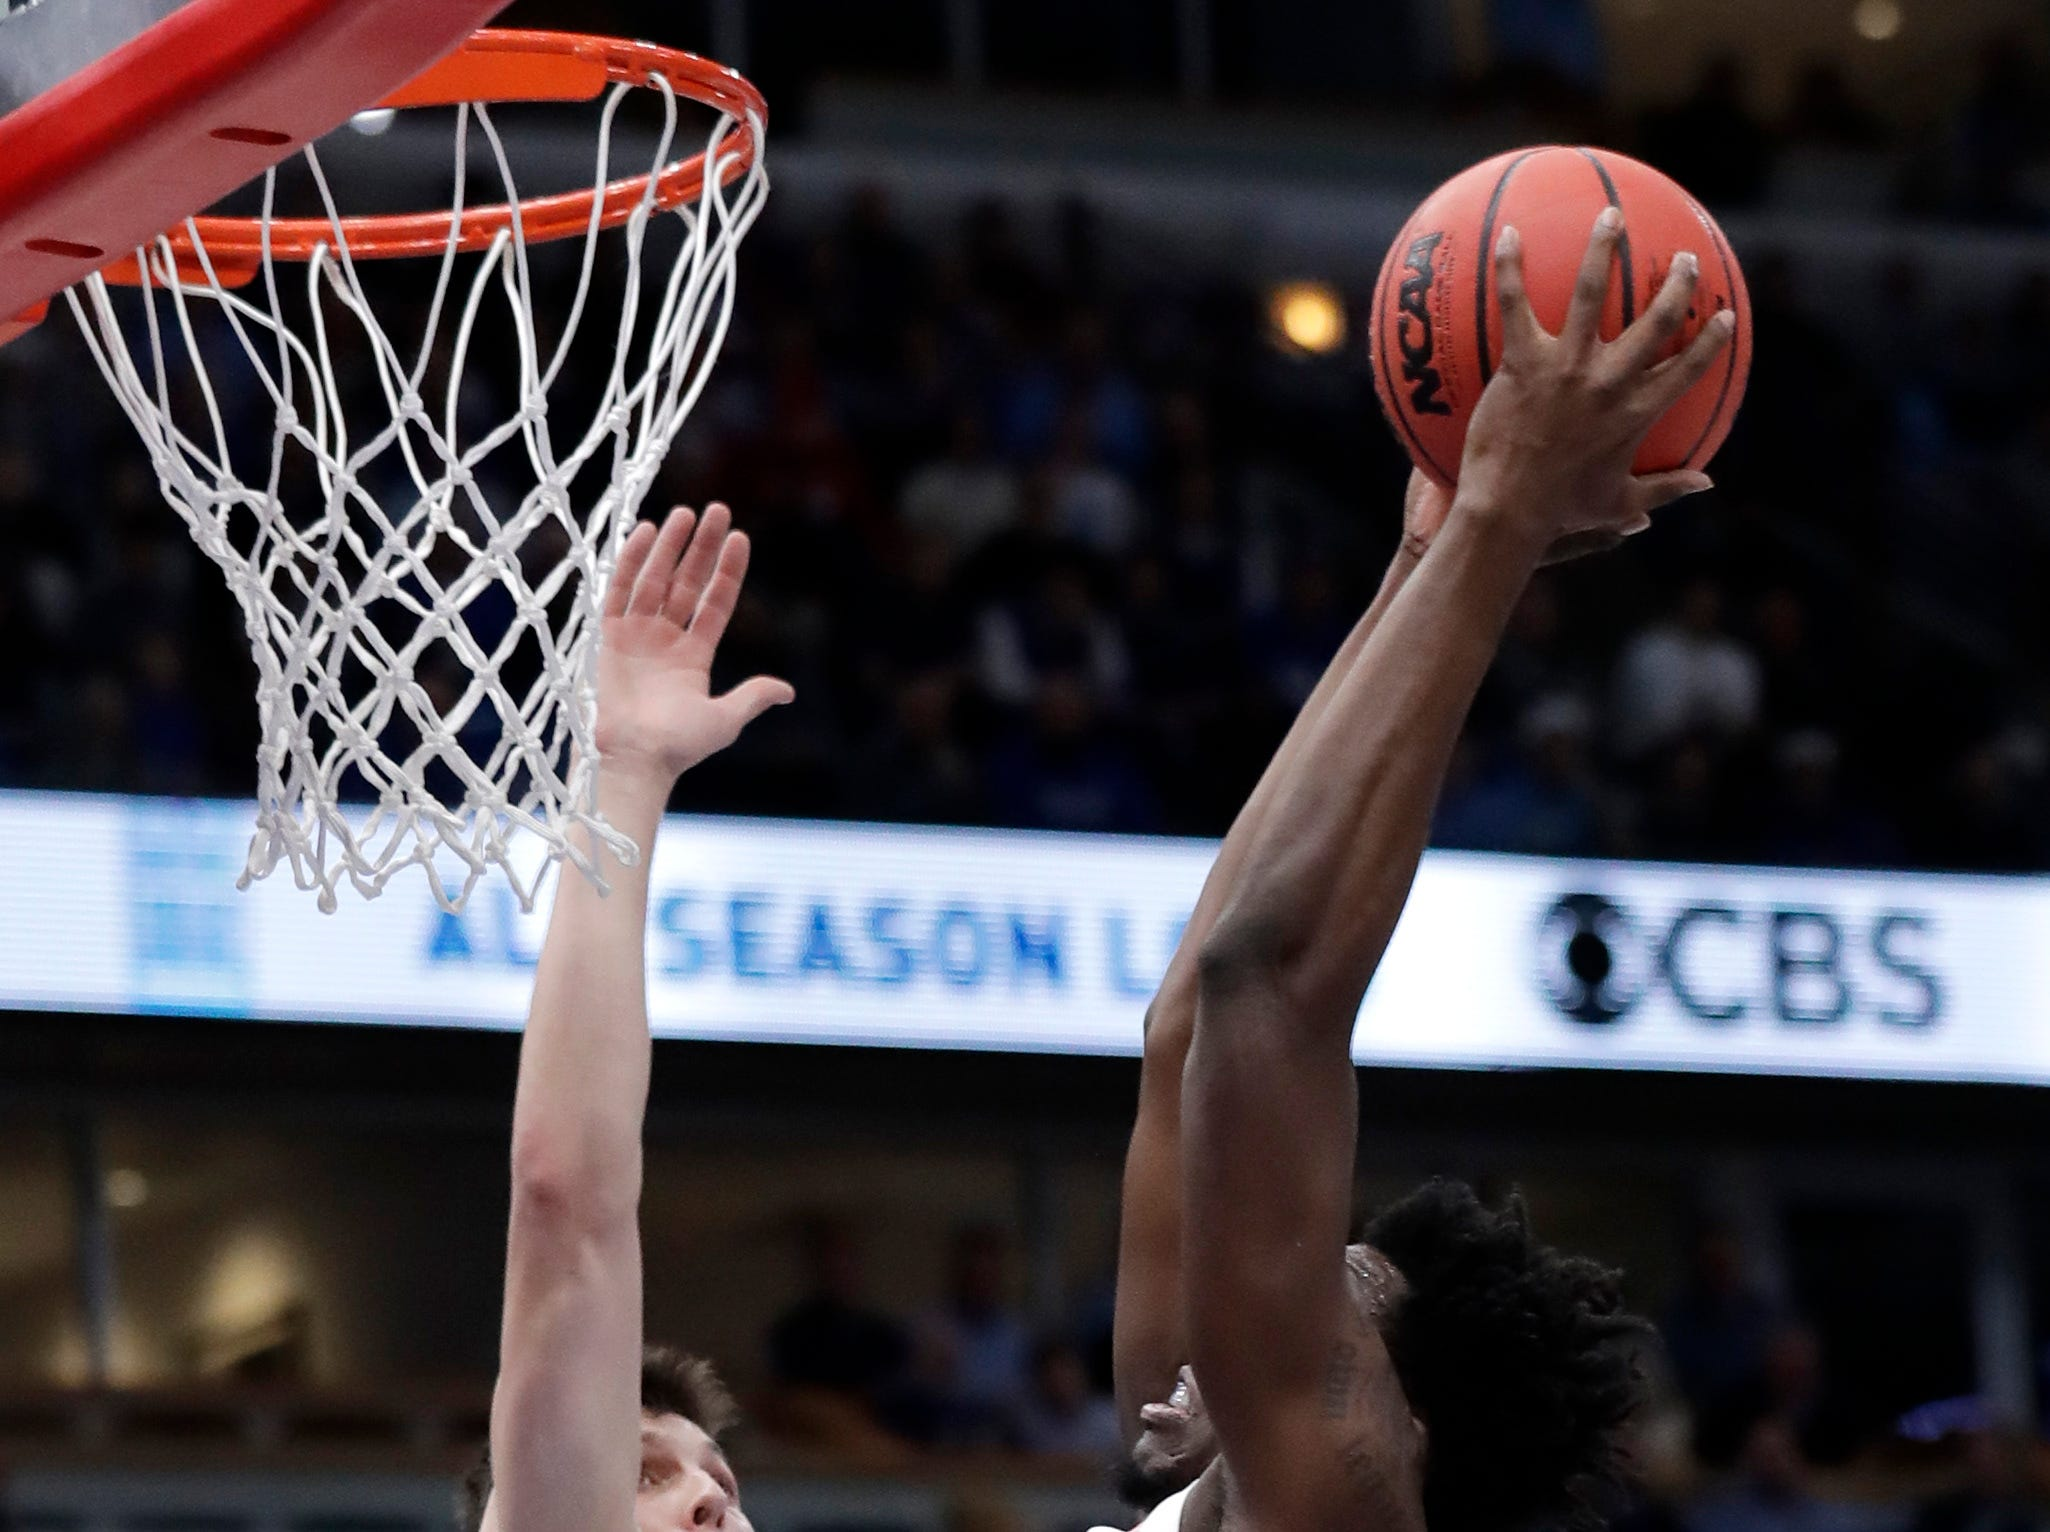 North Carolina forward Nassir Little, right, dunks against Kentucky guard/forward Tyler Herro during the first half of an NCAA college basketball game in the fifth annual CBS Sports Classic, Saturday, Dec. 22, 2018, in Chicago.